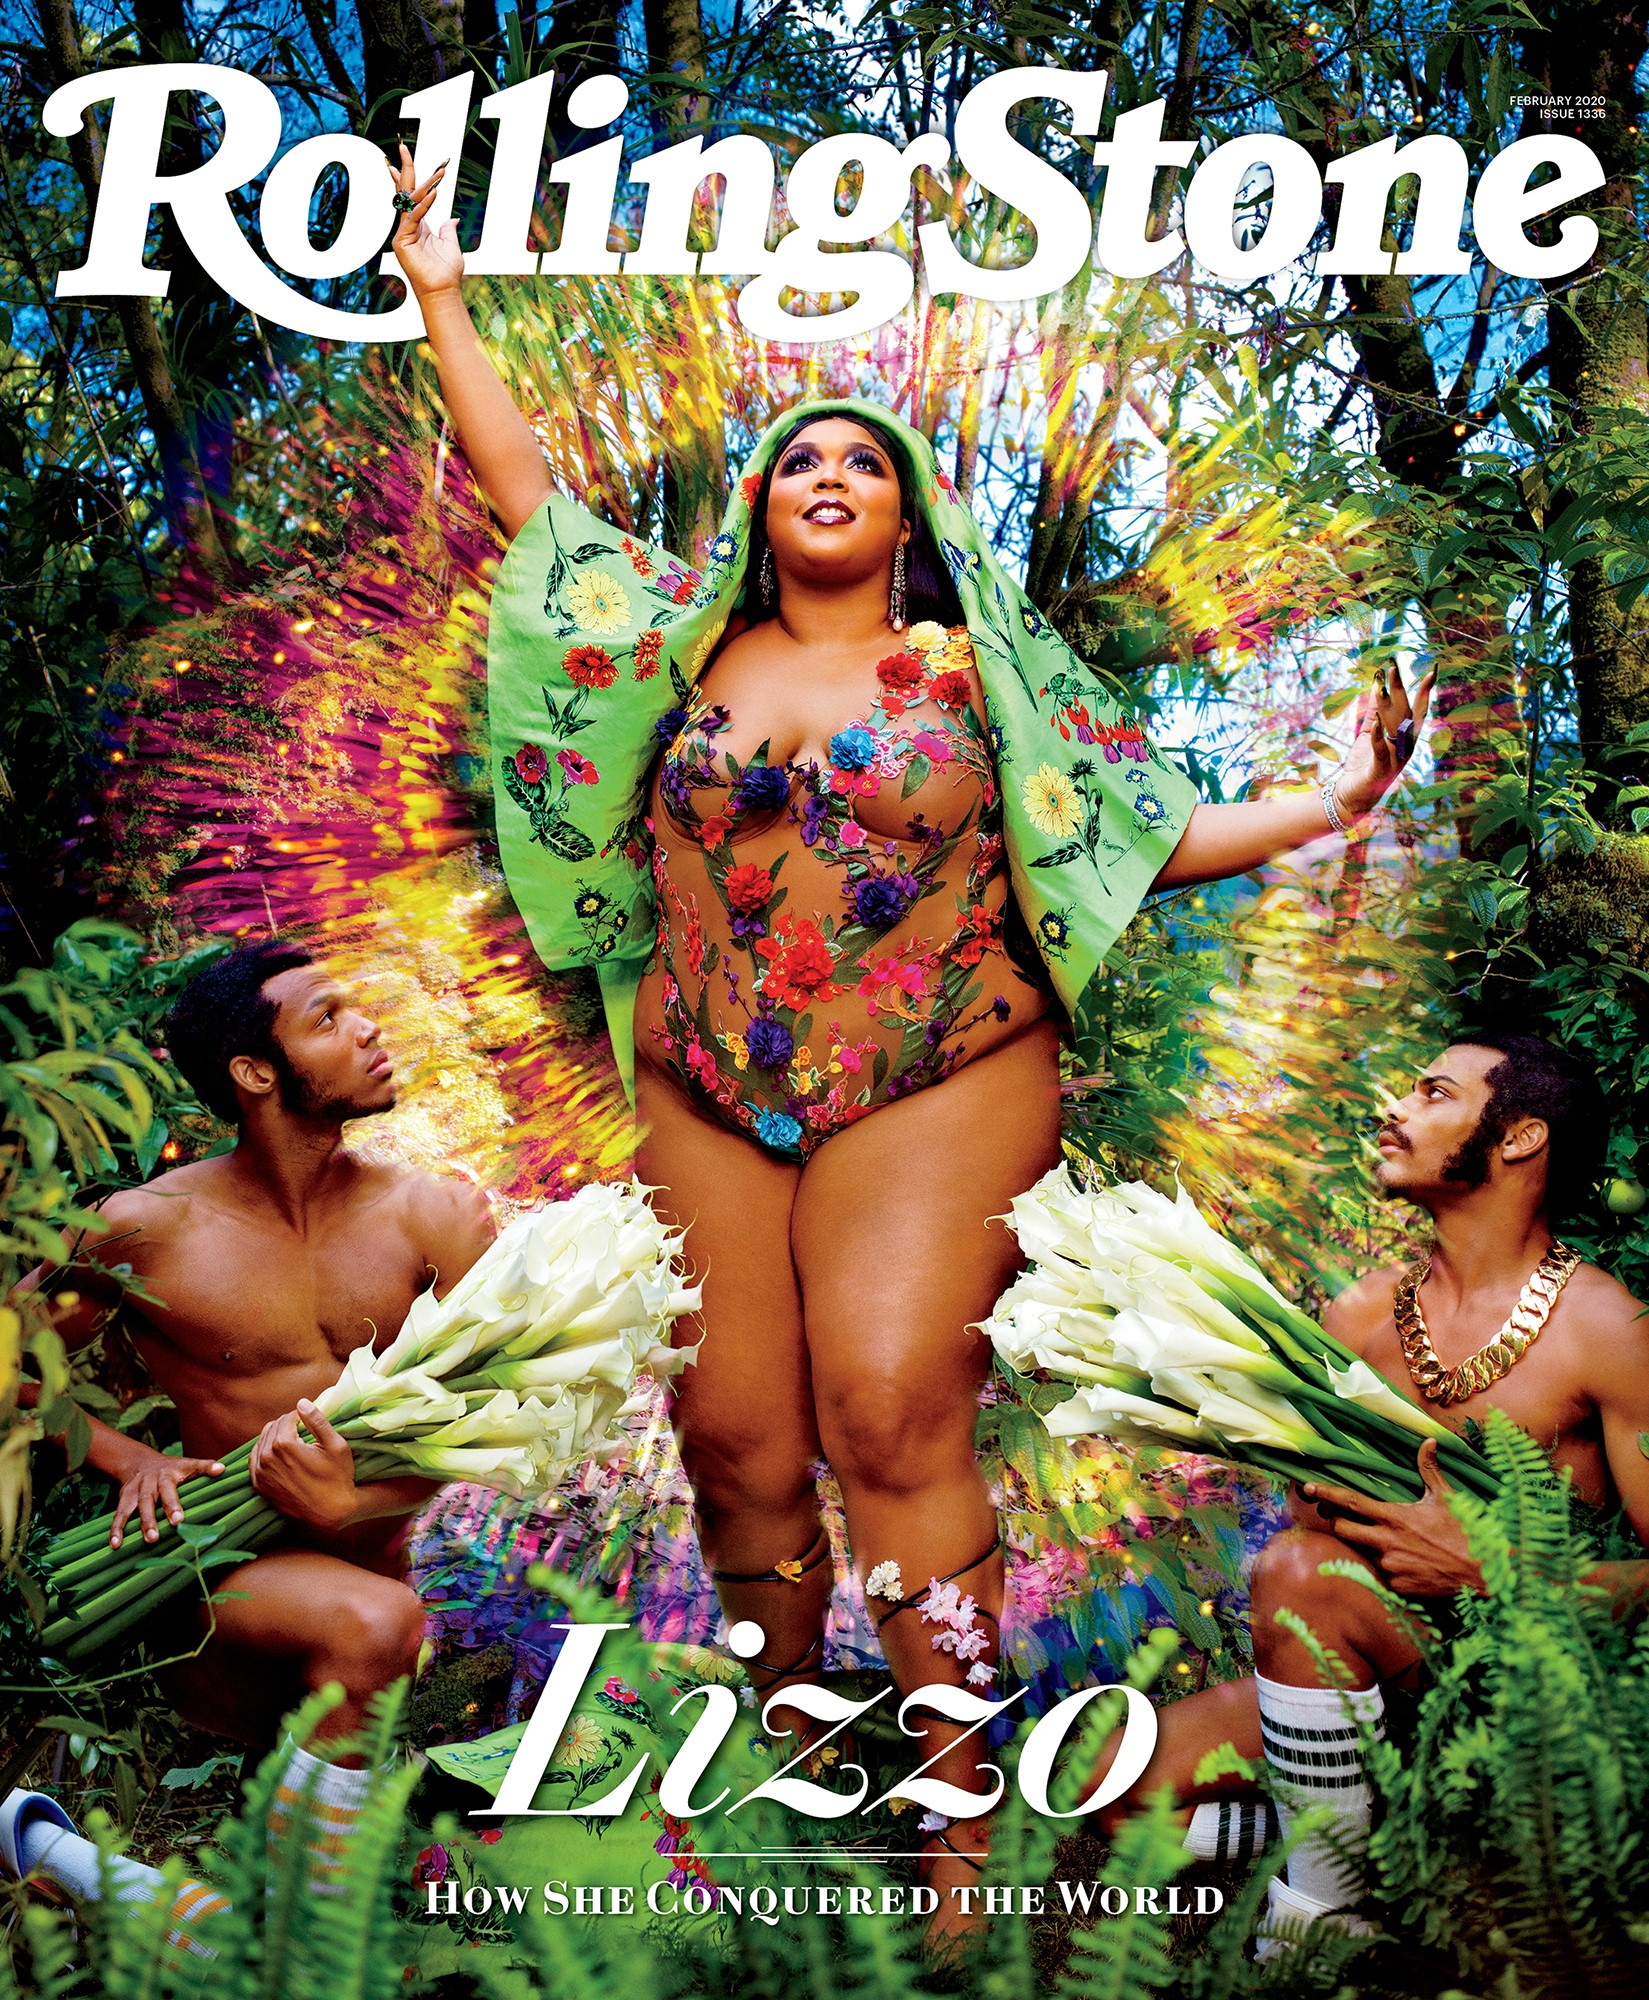 Lizzo Promotes Body Positivity by Gracing Rolling Stone Magazine Cover